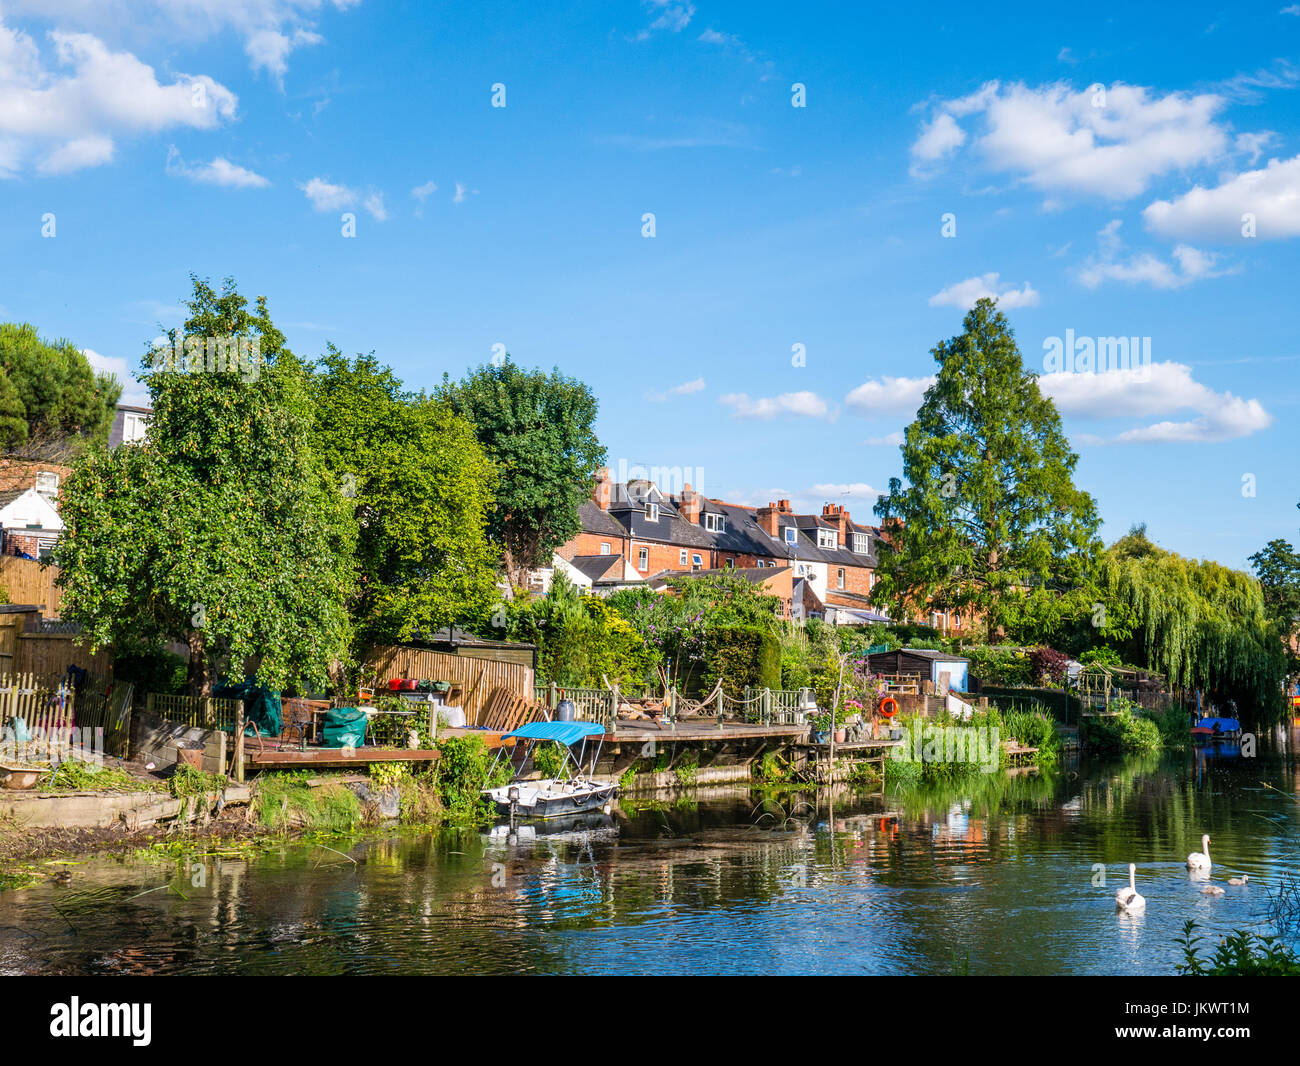 Terrace Housing and Gardens, River Kennet, Reading, Berkshire, England - Stock Image